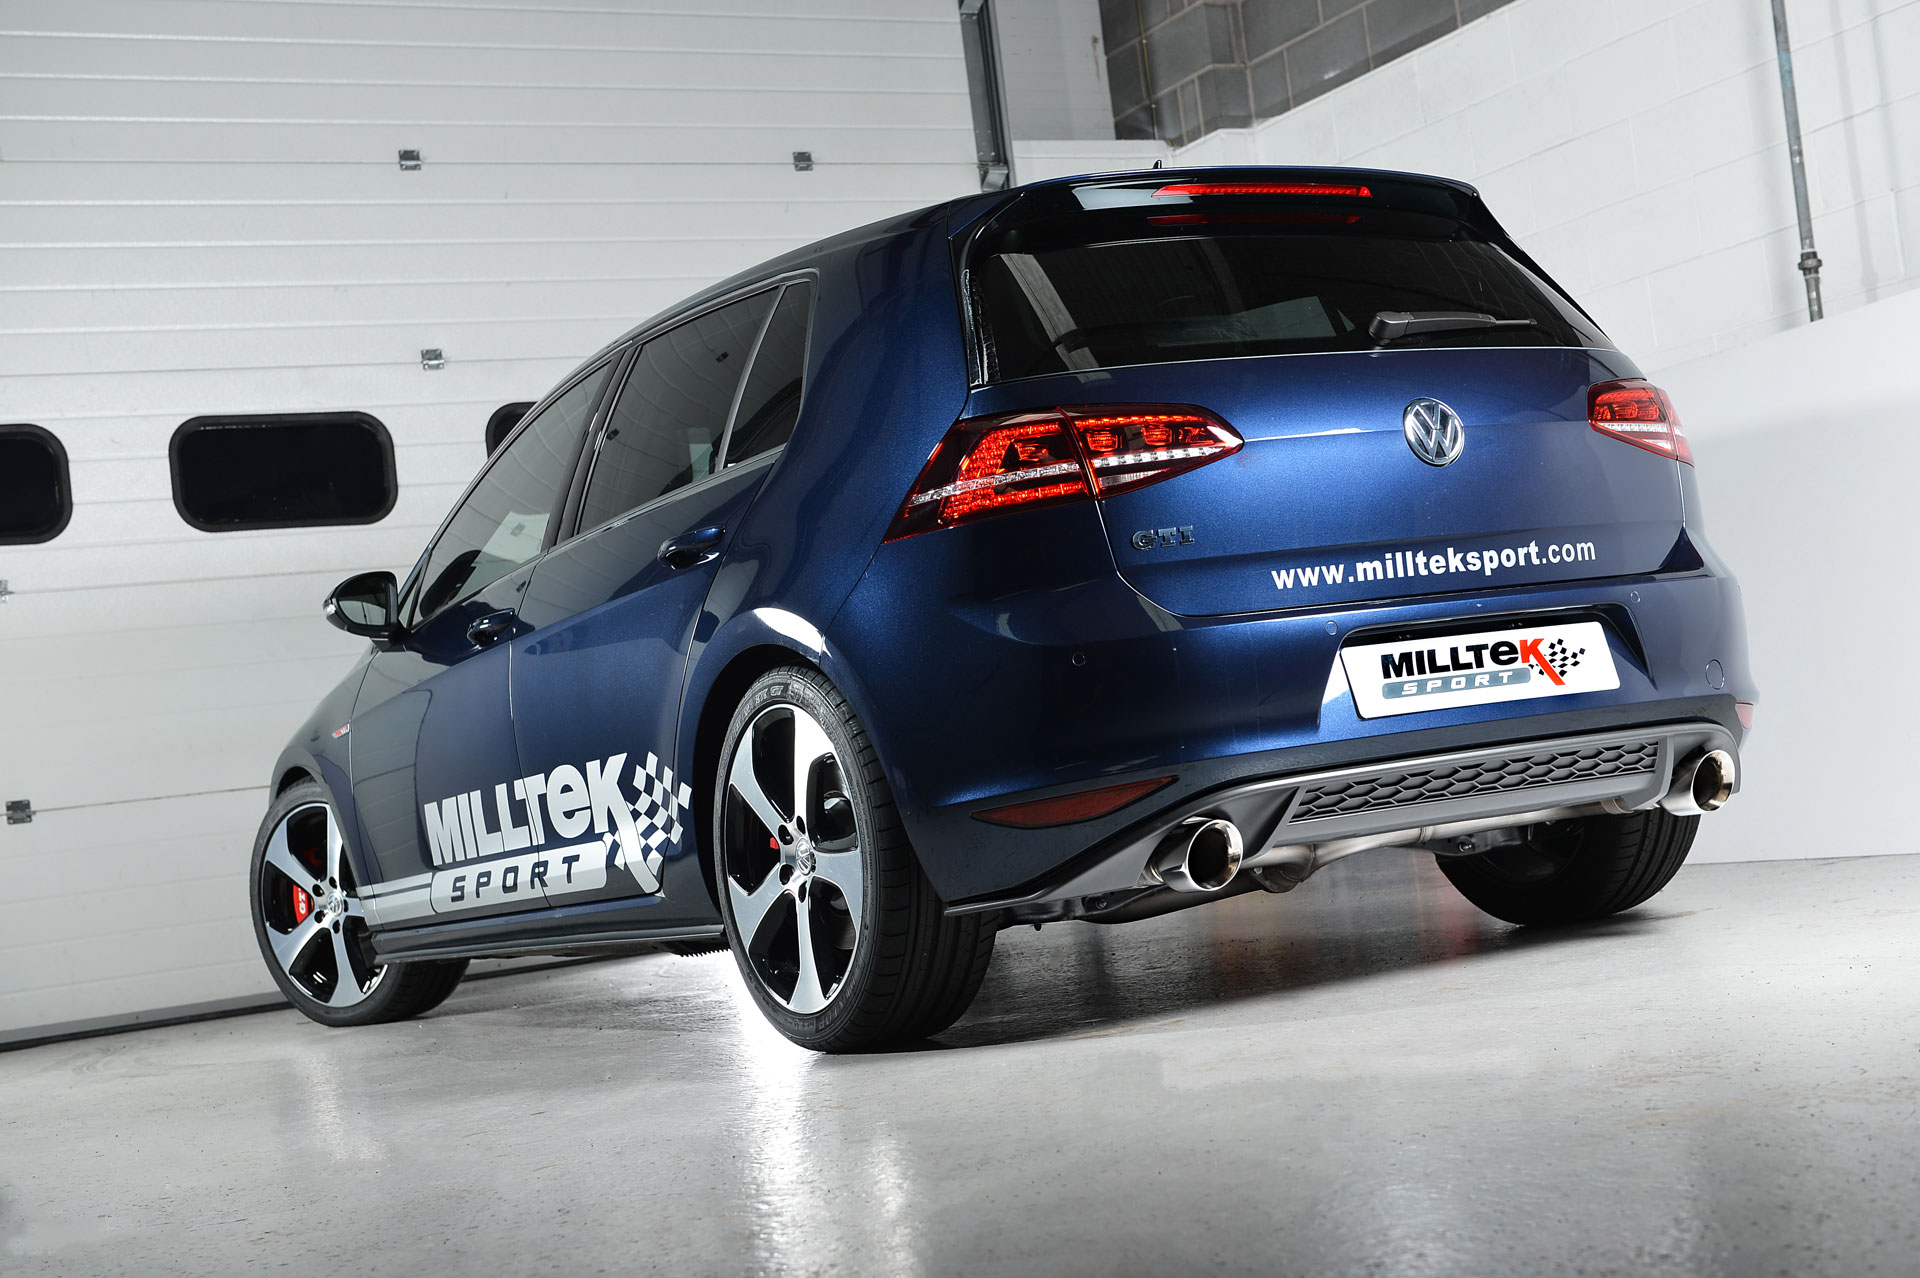 vw golf 7 gti gets milltek performance exhaust. Black Bedroom Furniture Sets. Home Design Ideas